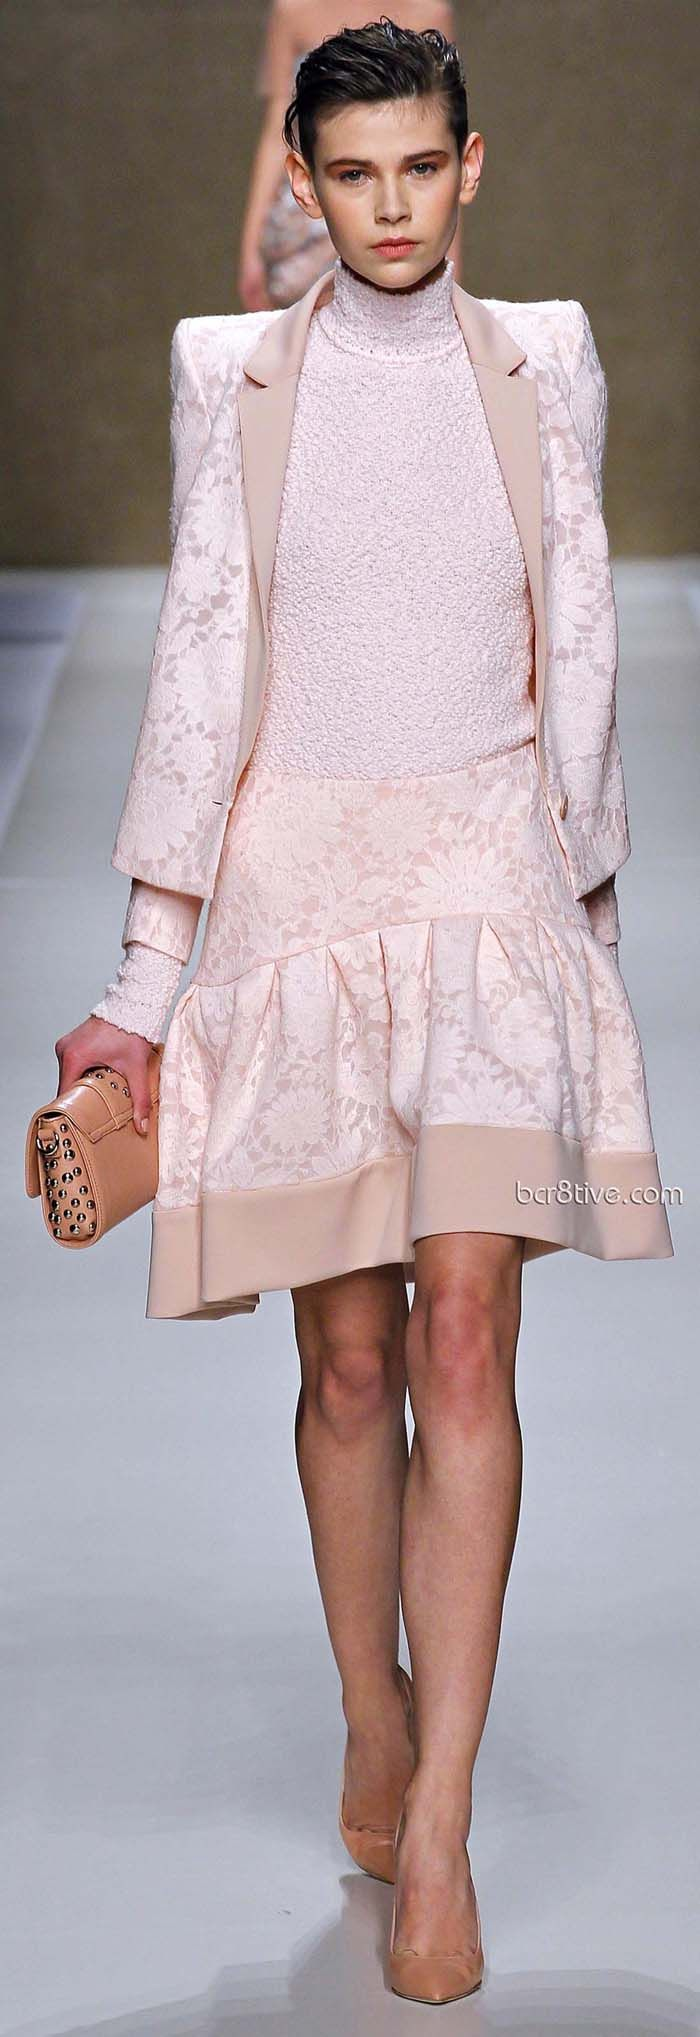 Fall winter 2013 fashion trends for women - Blumarine Fall Winter 2013 14